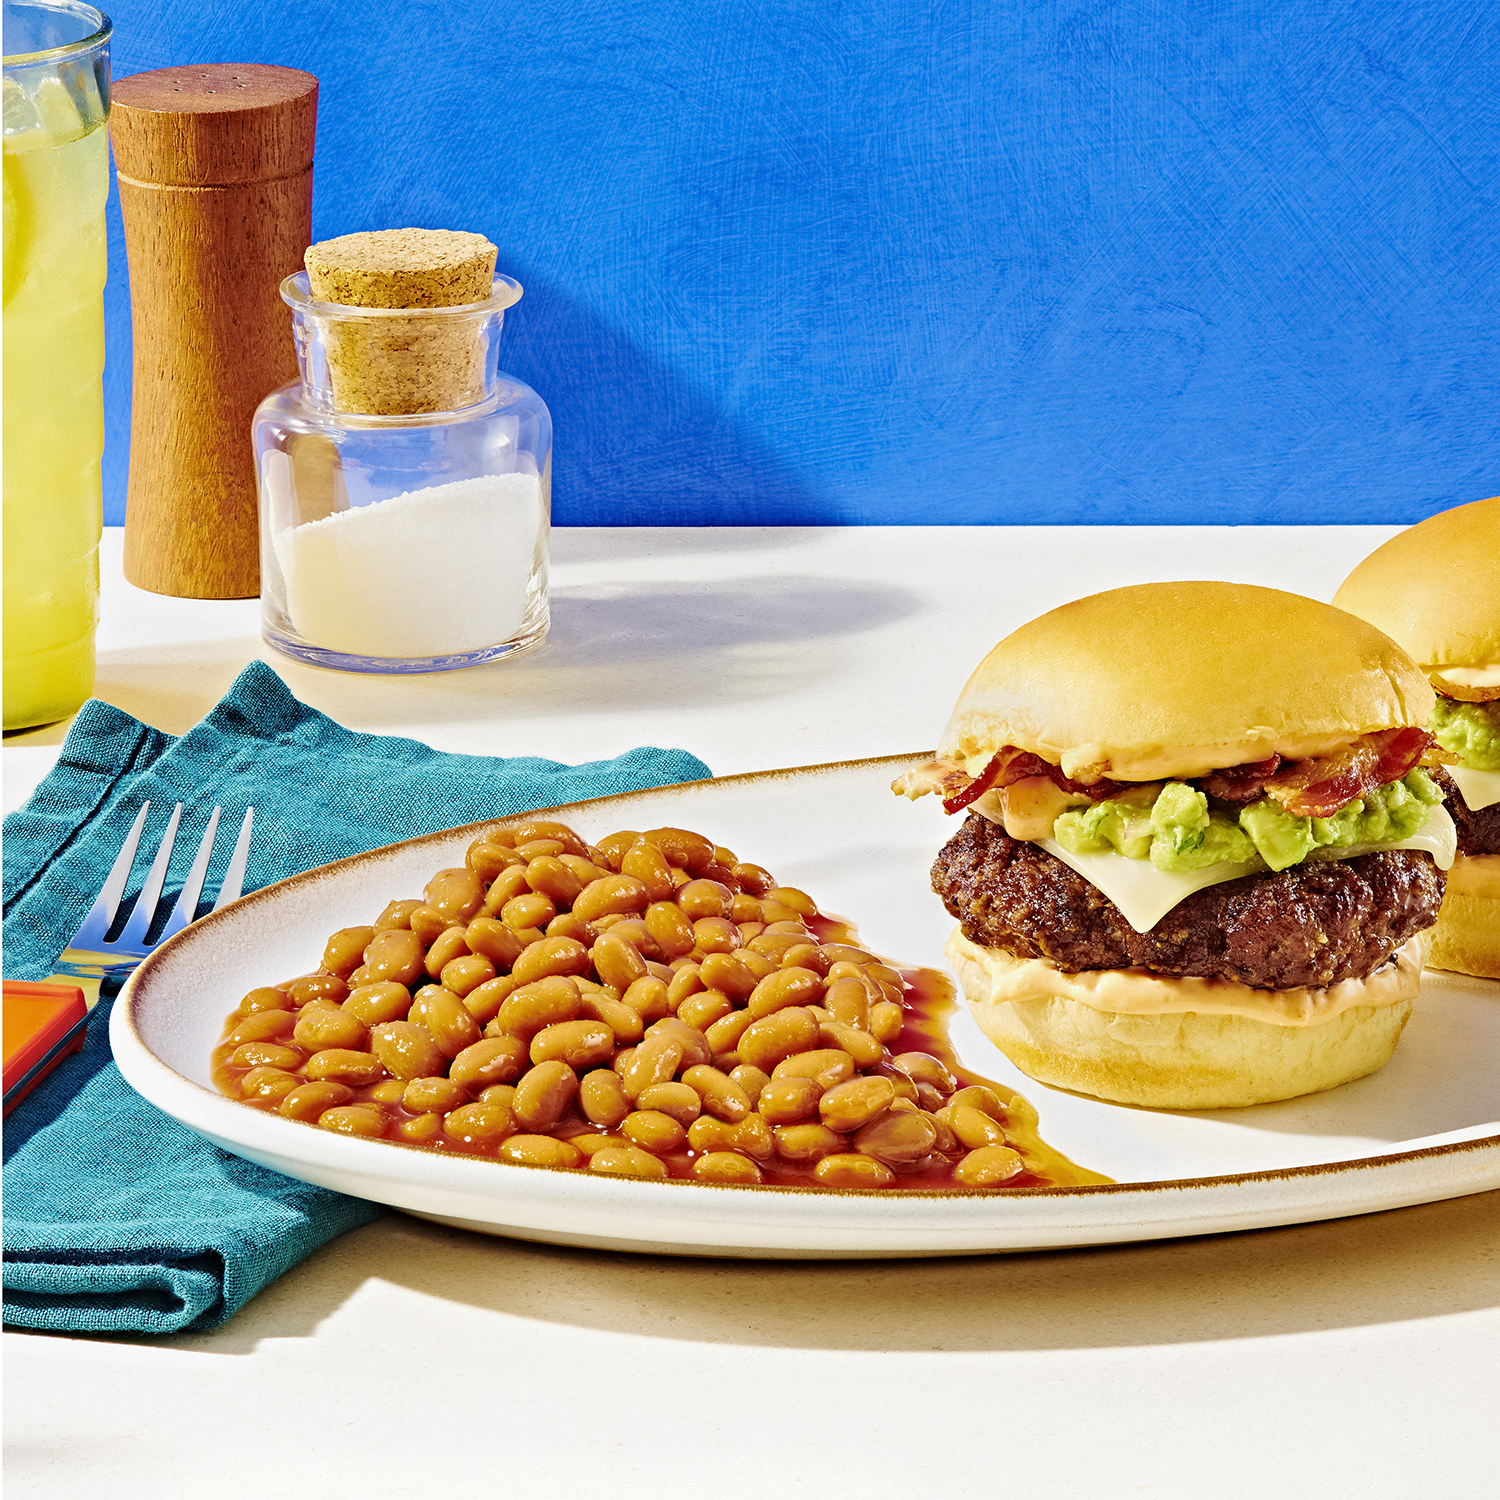 baked beans on a plate with a hamburger